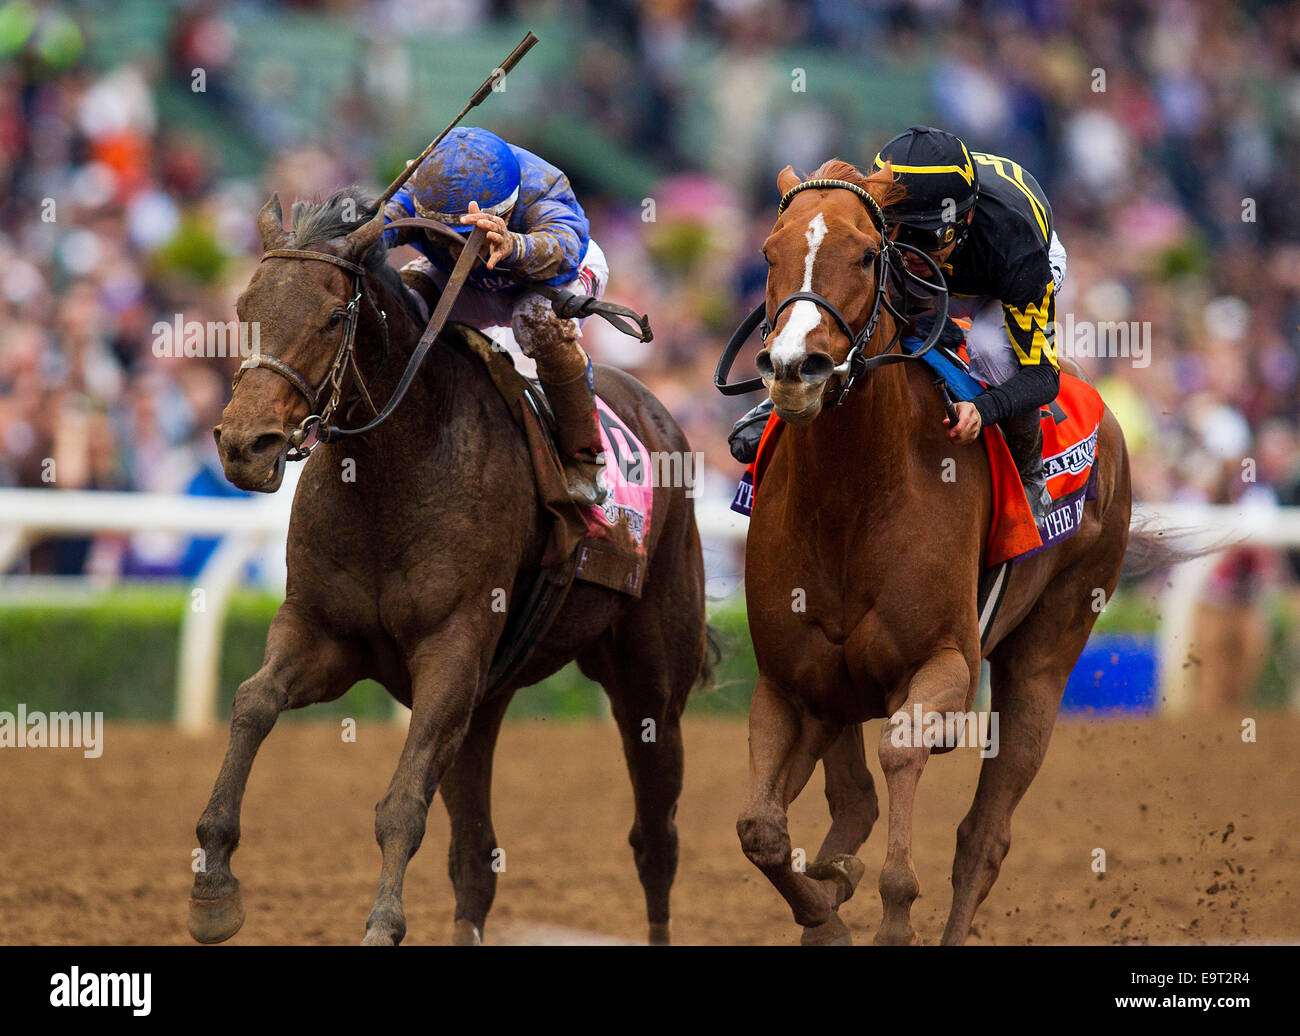 Arcadia, CA, USA. 1st Nov, 2014. November 01 2014: Judy the Beauty, ridden by Mike Smith and trained by Wesley Ward, - Stock Image